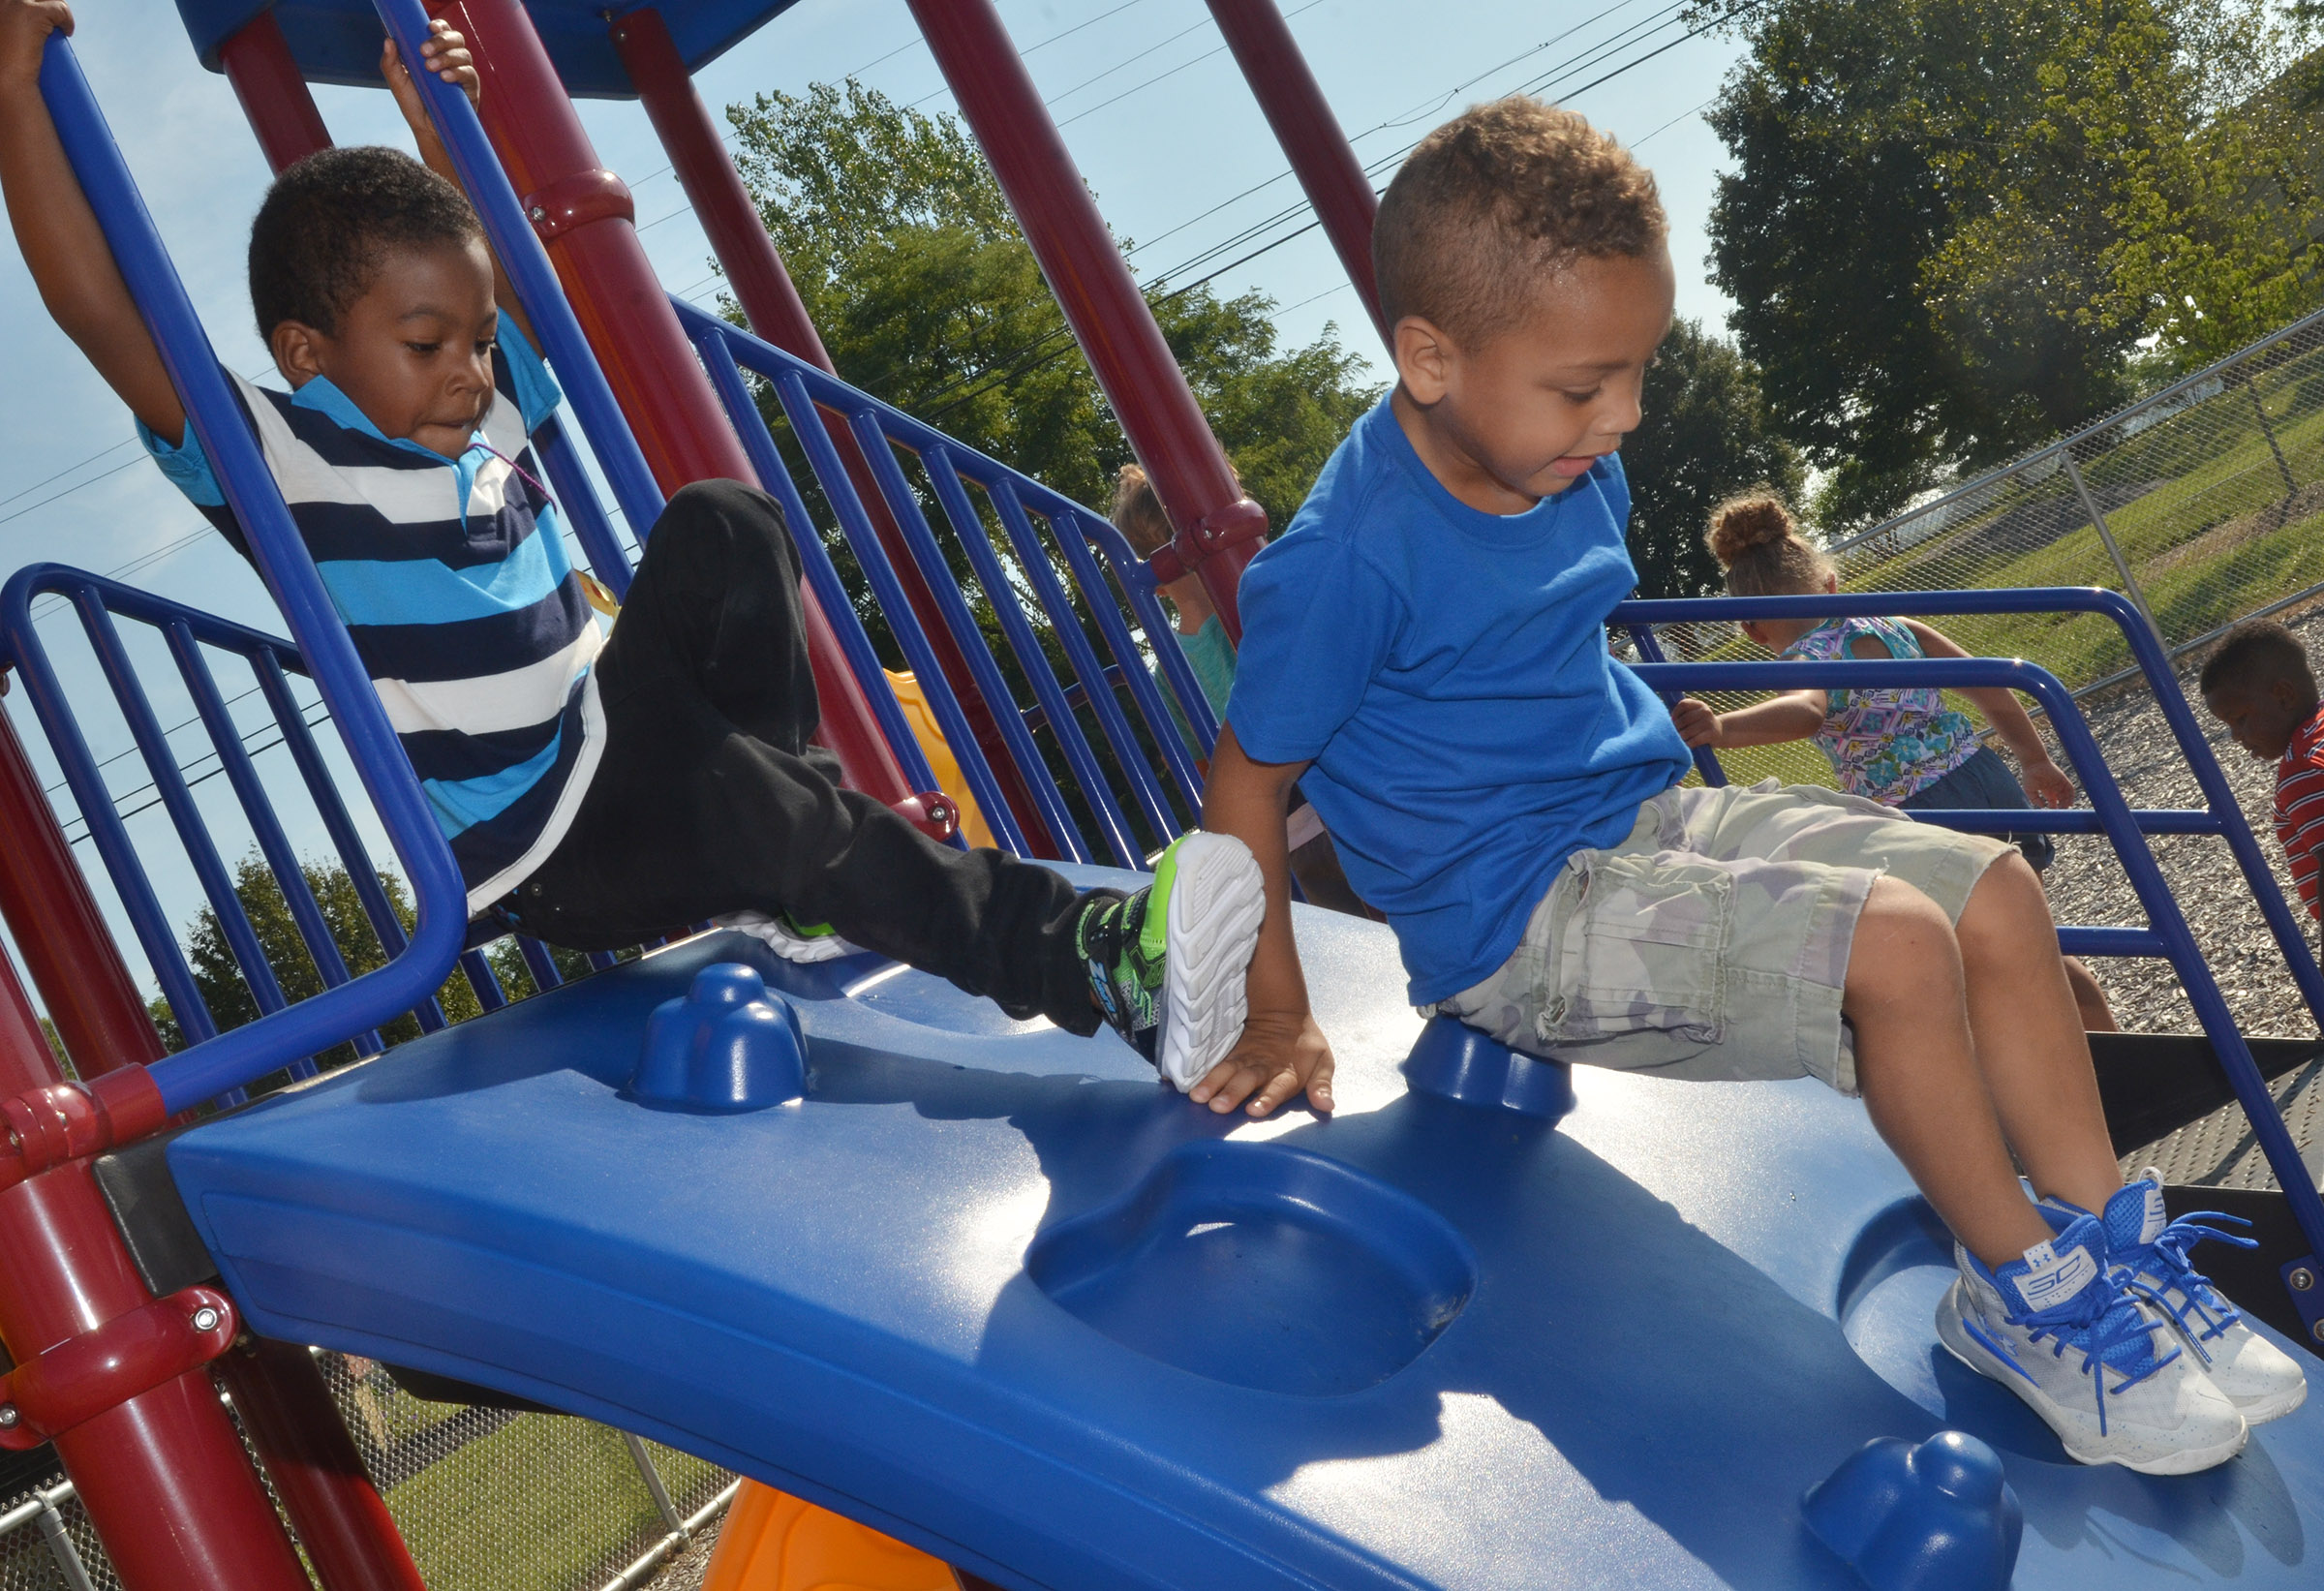 CES preschool student Rakim Dunn, at left, and Jasiahas Anderson climb on the playground.